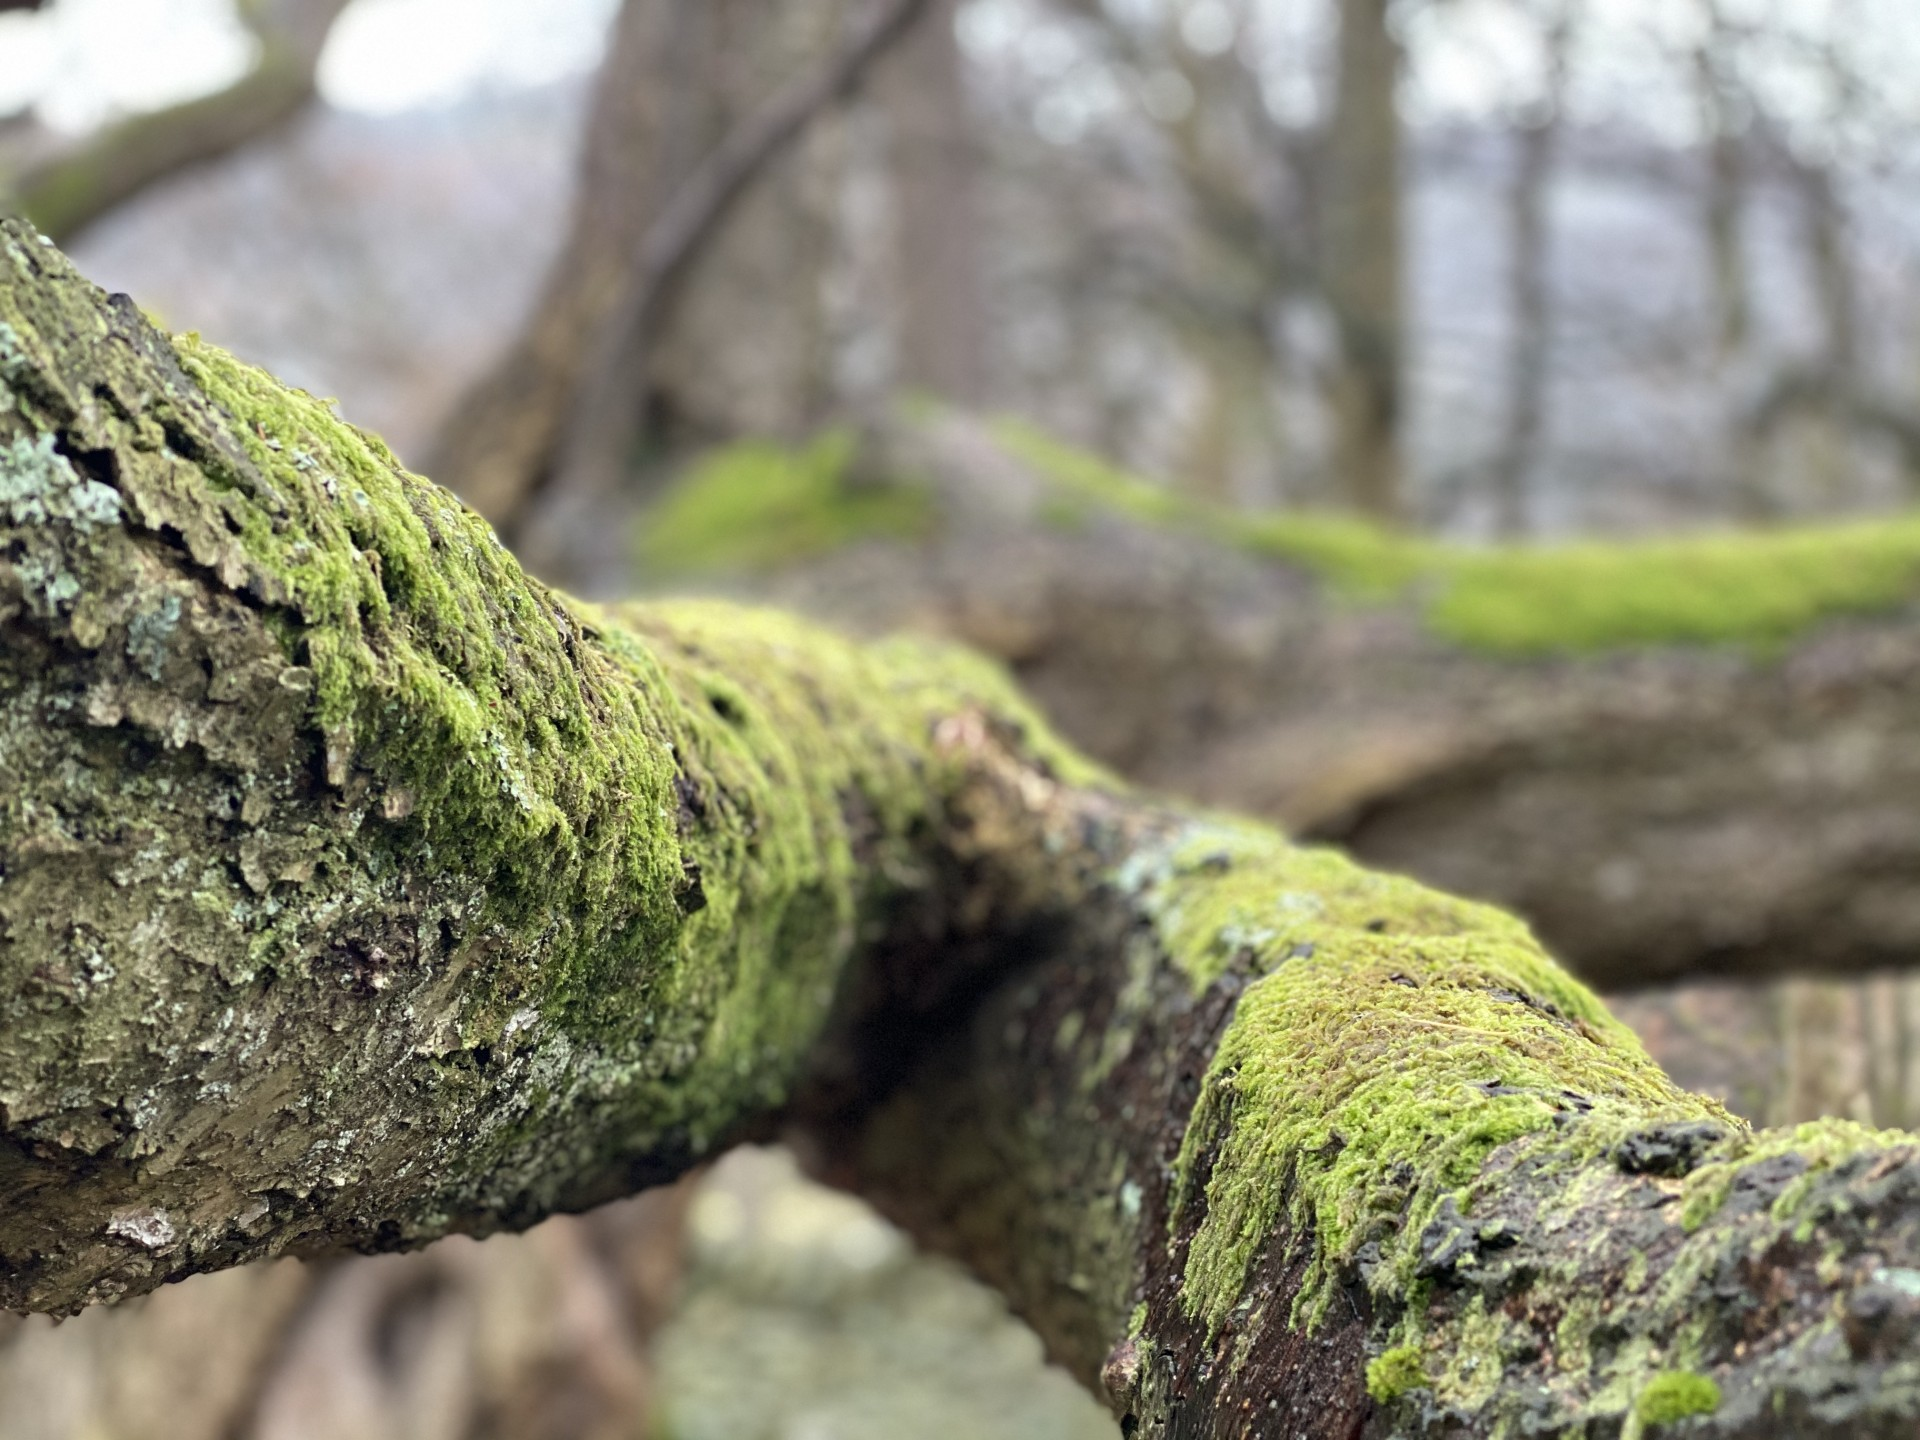 Tree branch with moss & lichen cover.